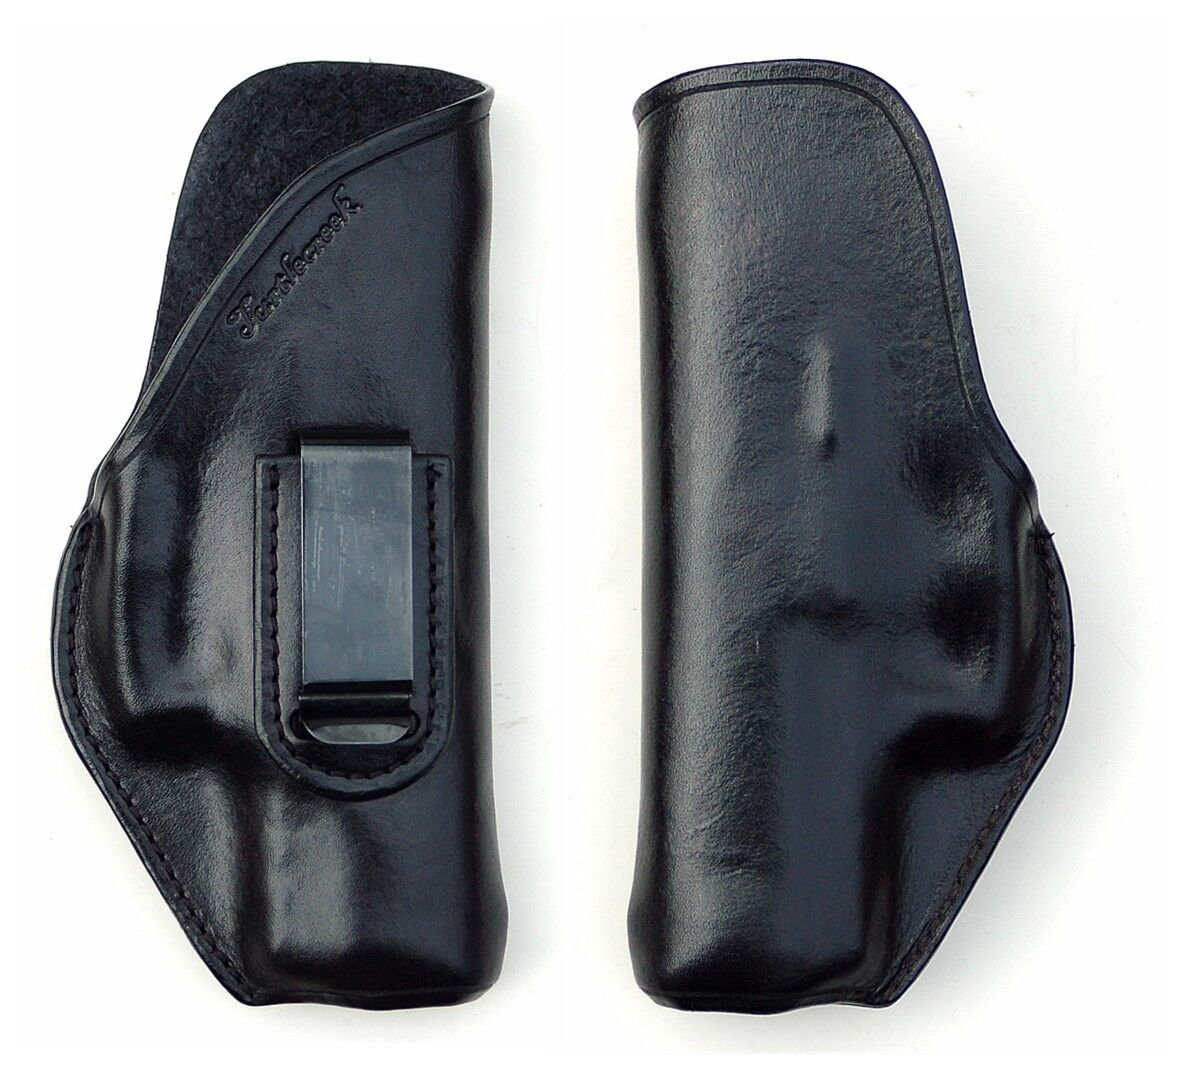 Turtlecreek Leder IWB Holster Right Hechler HK P30 - Right Holster Hand Pattern & Fixed Clip 63a724